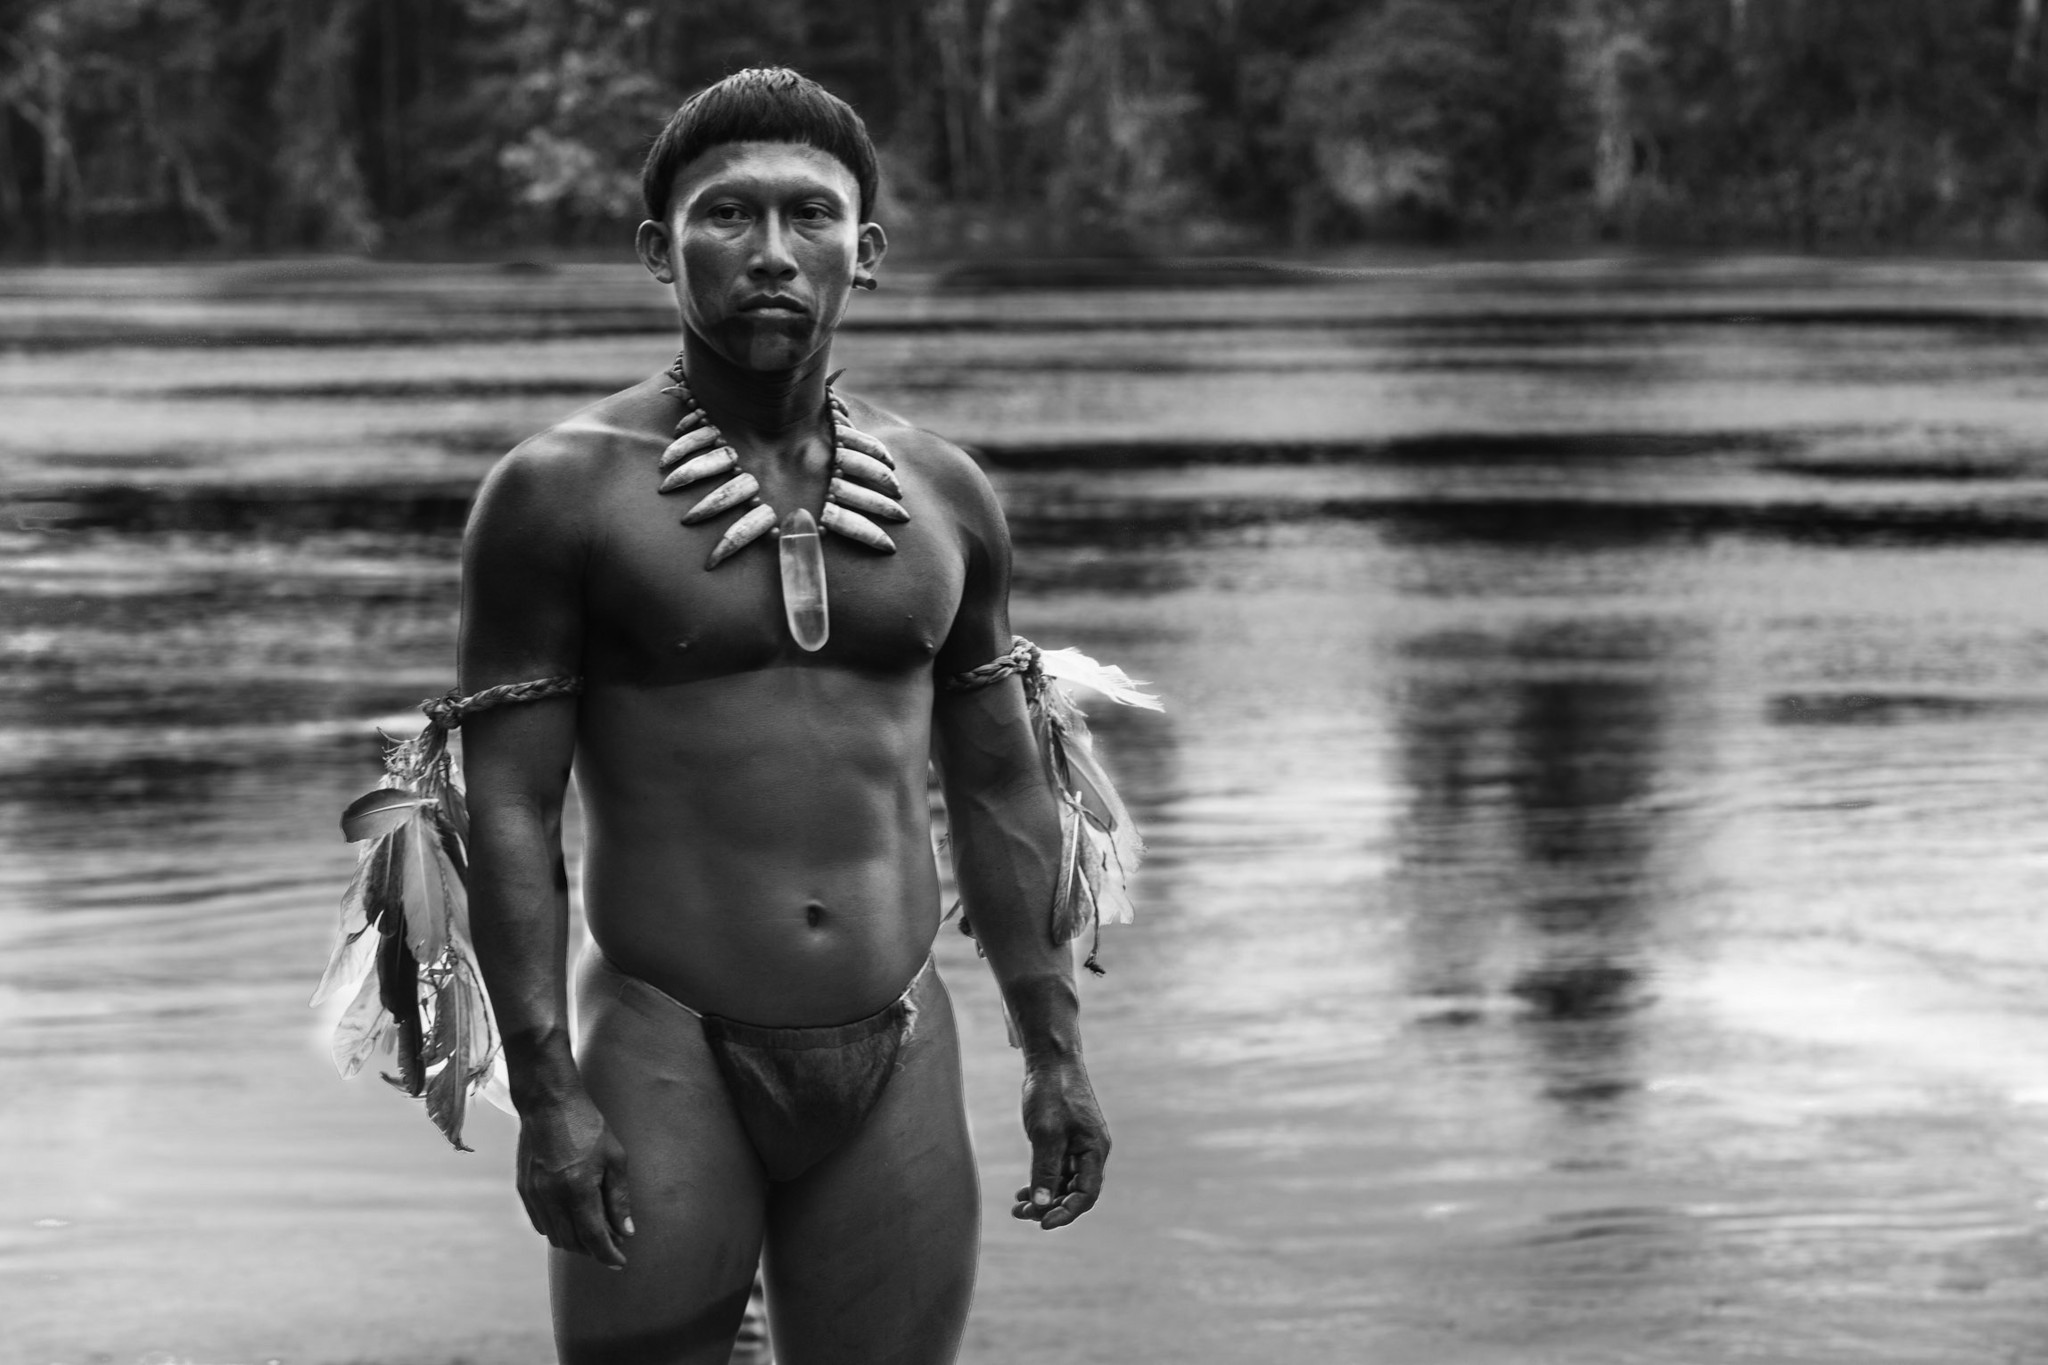 Still from Embrace of the Serpent